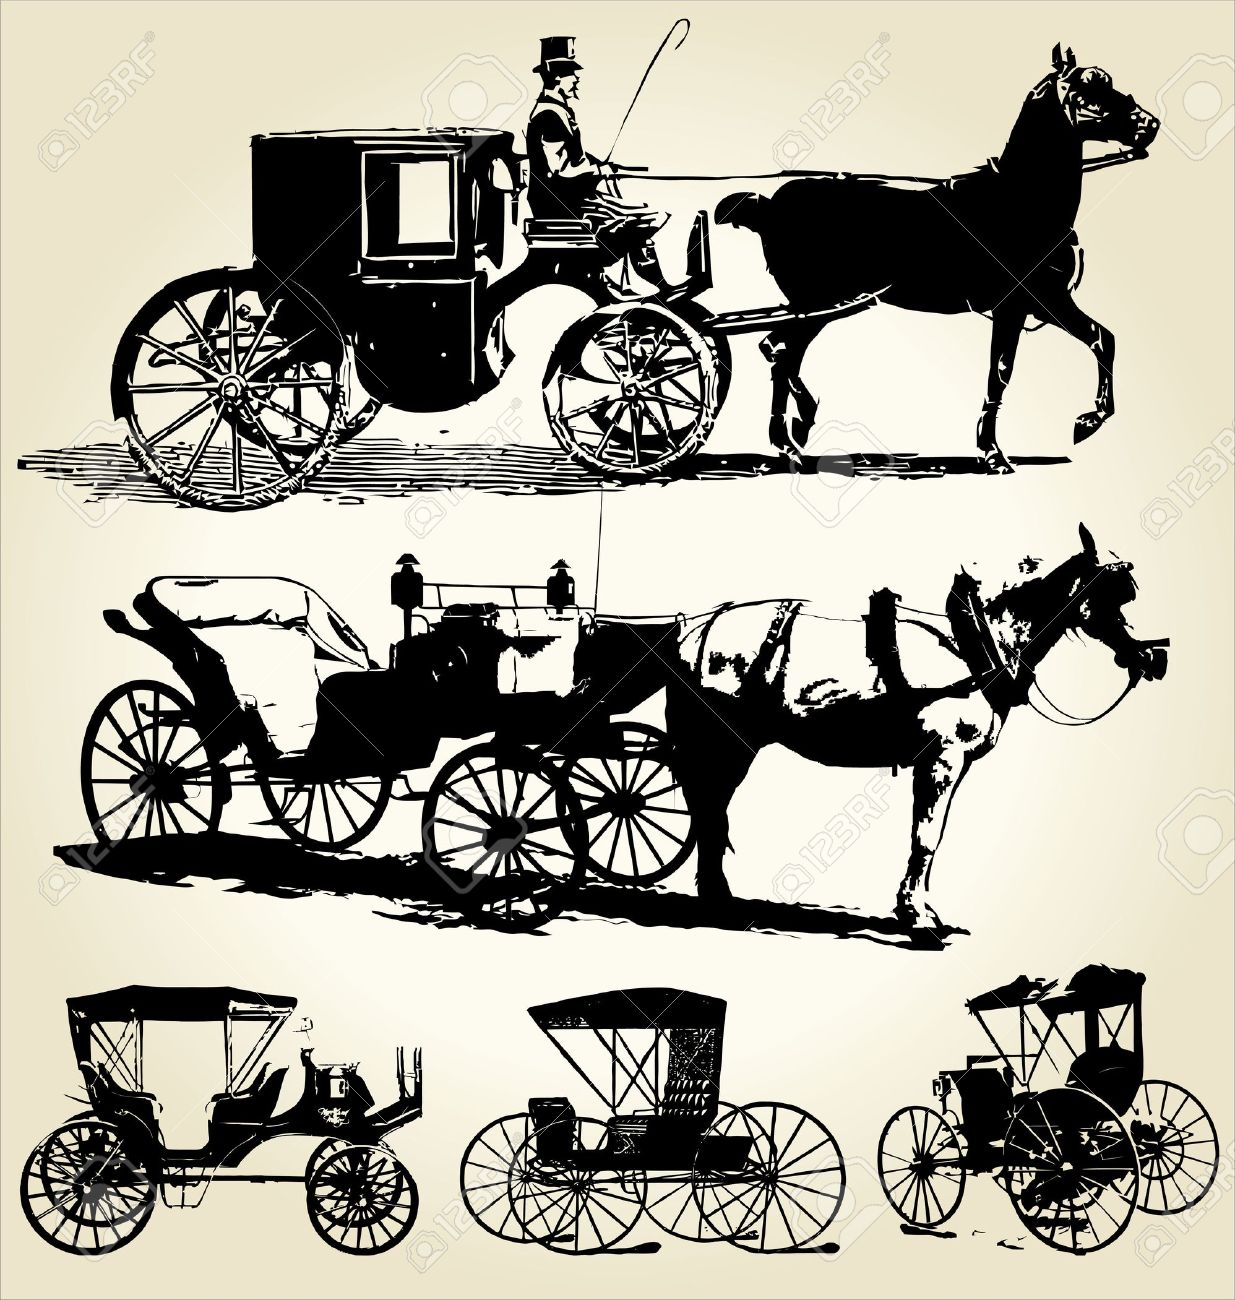 horse and carriage silhouette collection Stock Vector - 10869159